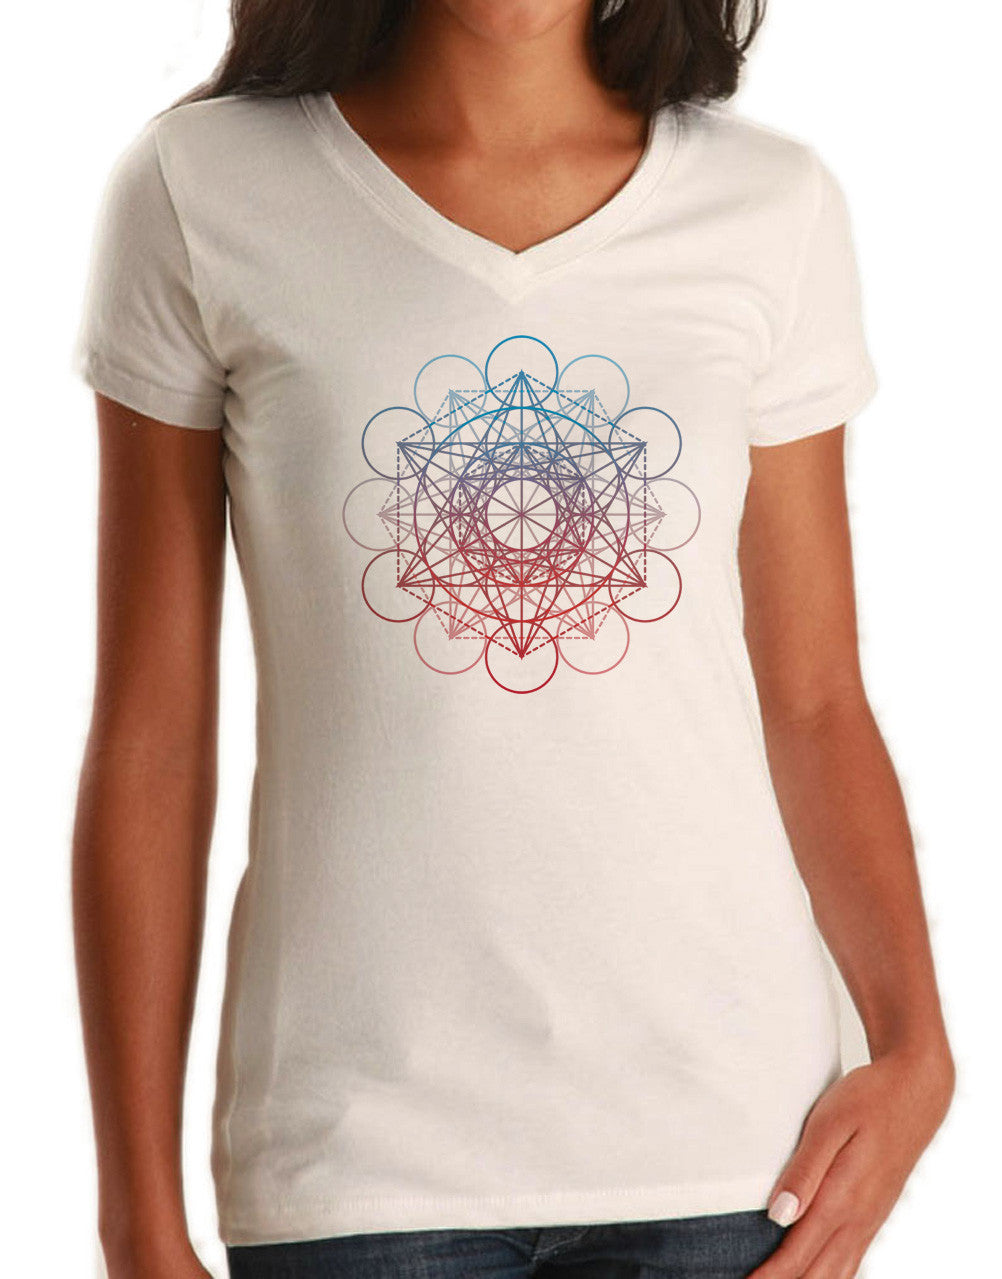 Women's Metatrons Cube Rainbow Vneck T-Shirt Geometric Crystal New Age Yoga